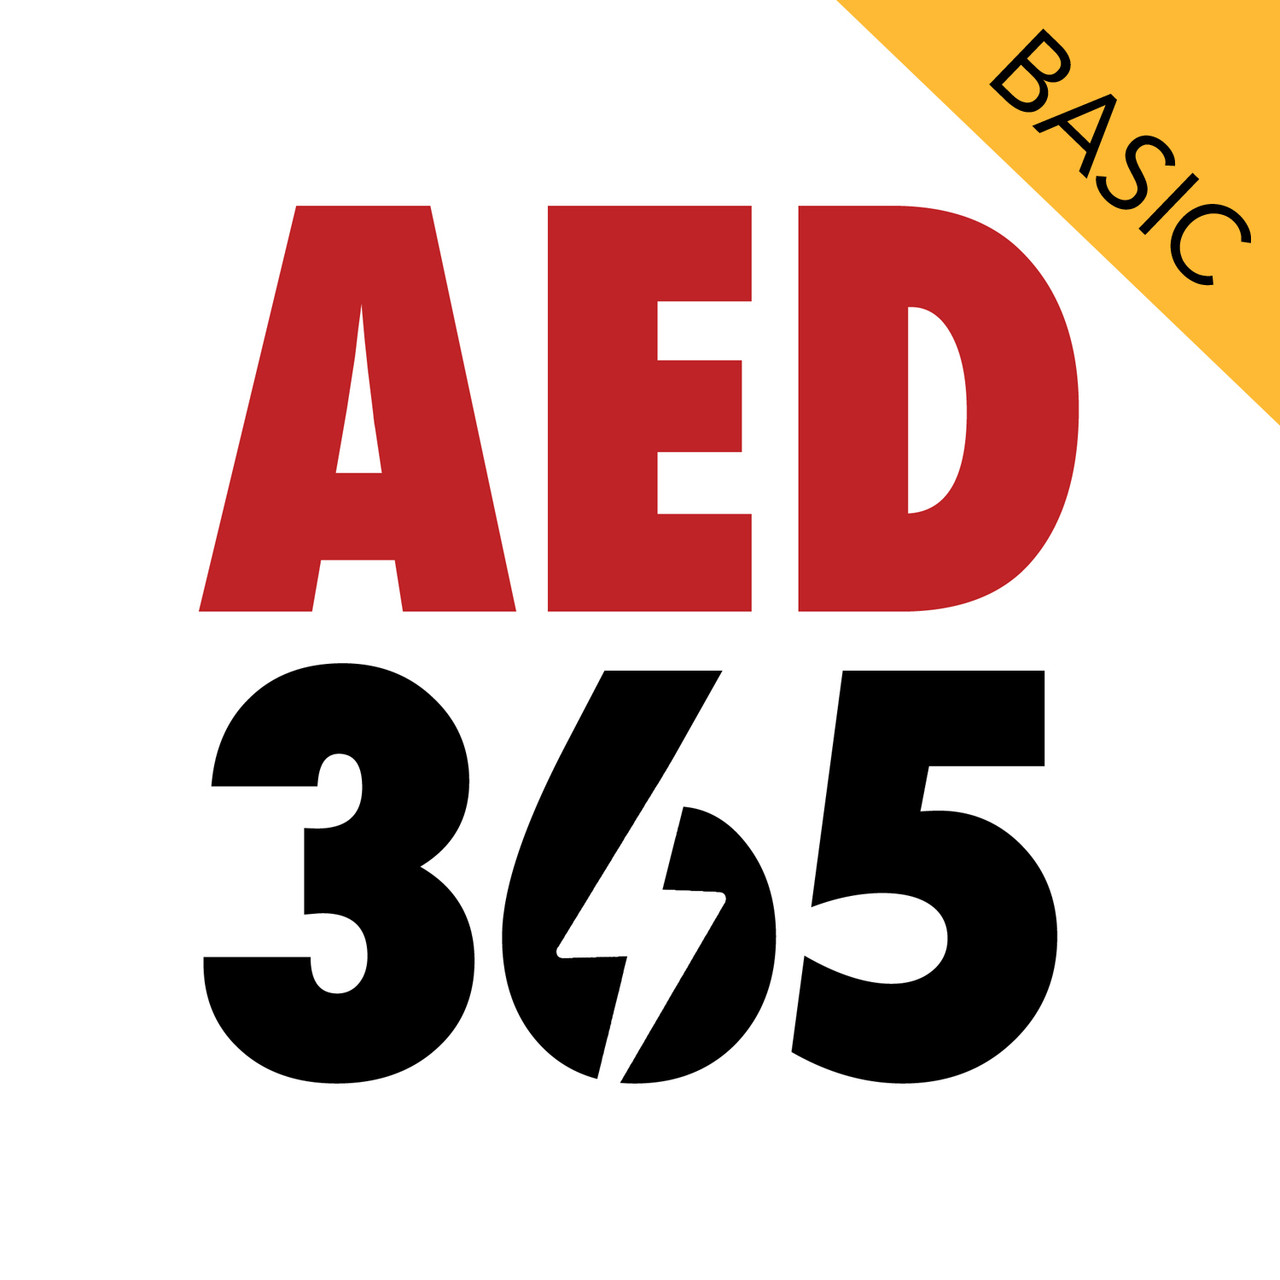 AED365 Basic Plan (Starting Price - Discounted Options Available)